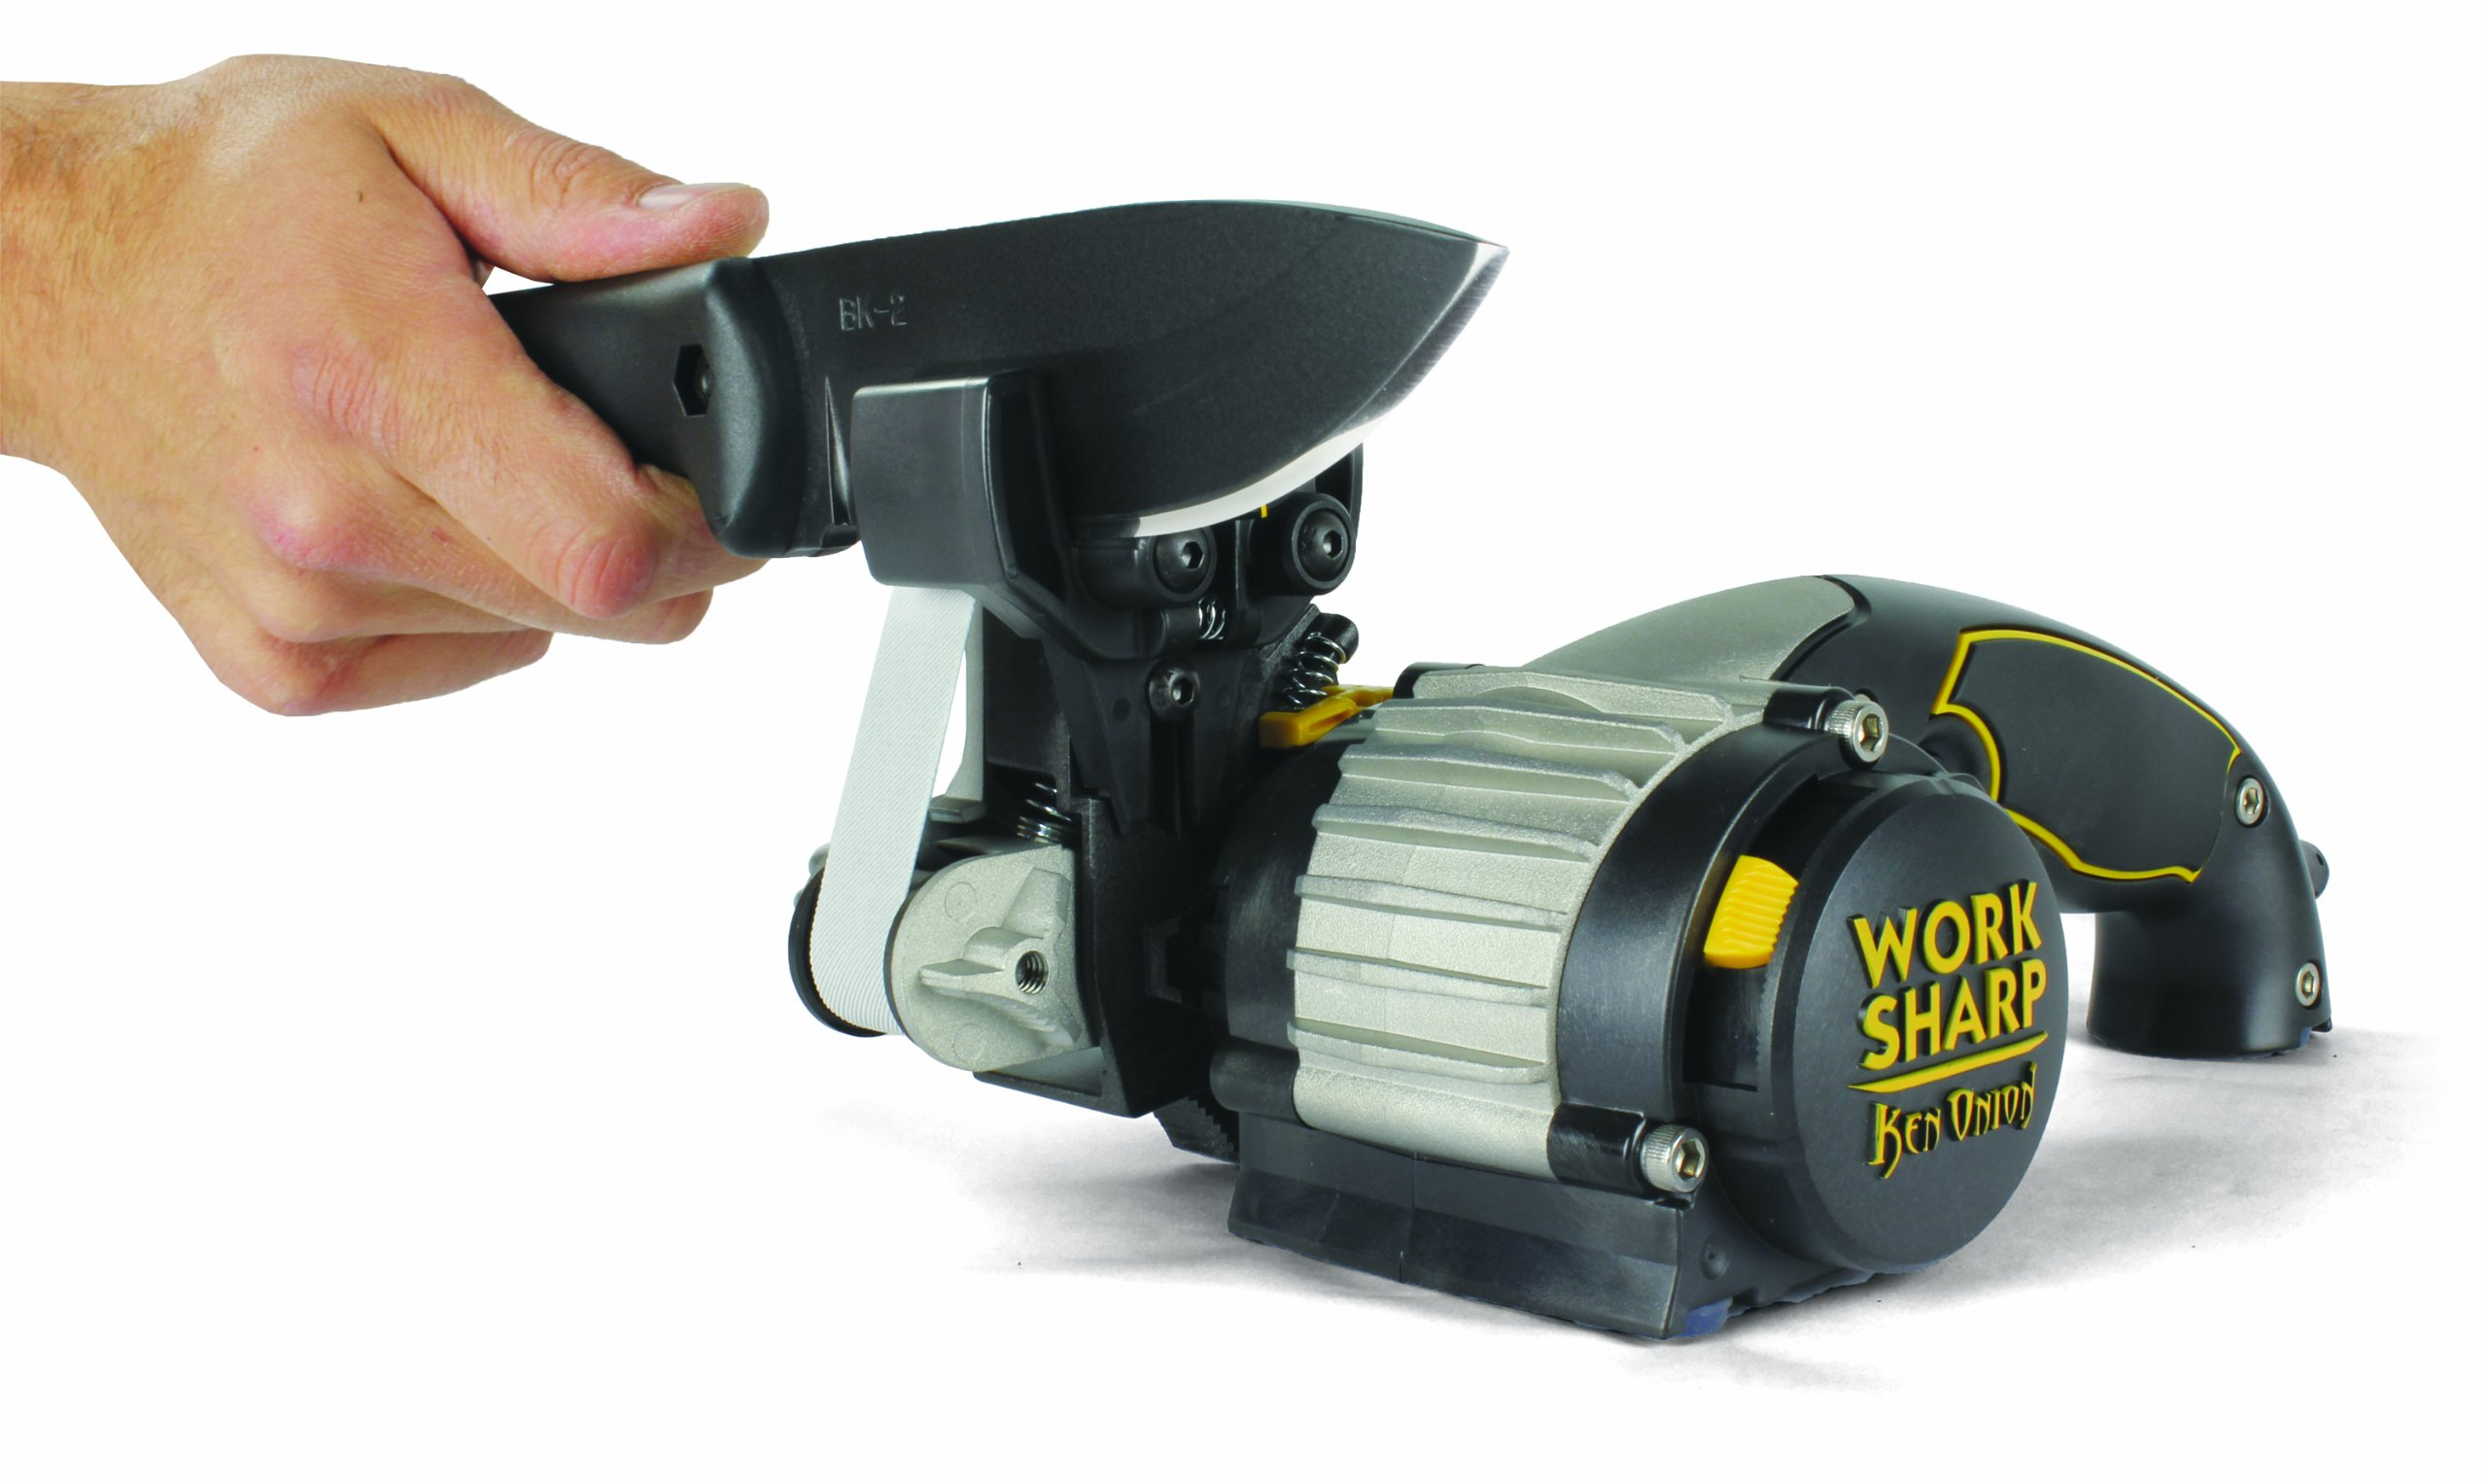 Work Sharp Ken Onion Edition, Fast, Repeatable, & Precision Sharpening from 15° to 30°, Premium Flexible Abrasive Belts, Variable Speed Motor, & Multi-Positioning Sharpening Module by Work Sharp (Image #8)